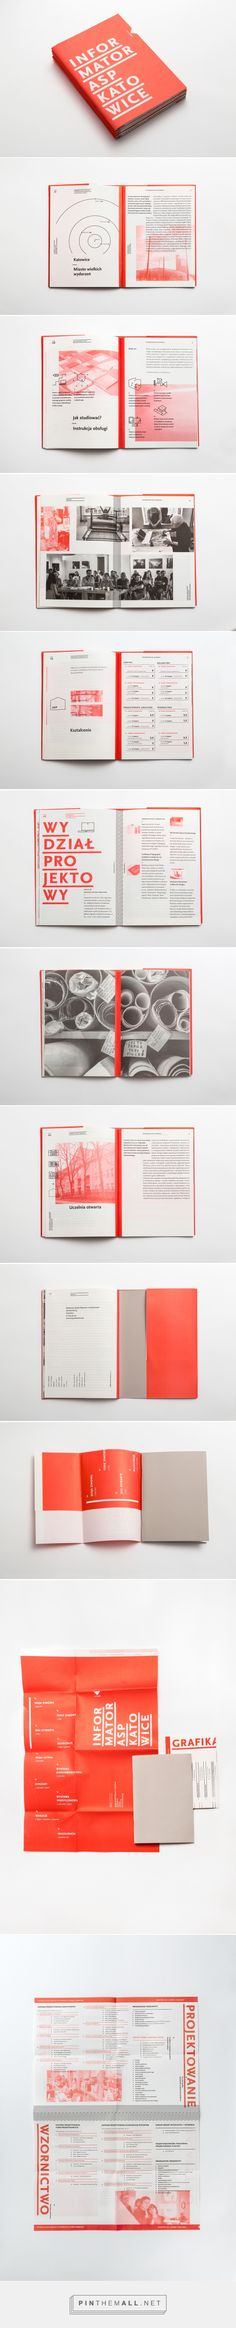 Informator ASP Katowice / Guide on Behance... - a grouped images picture - Pin Them All